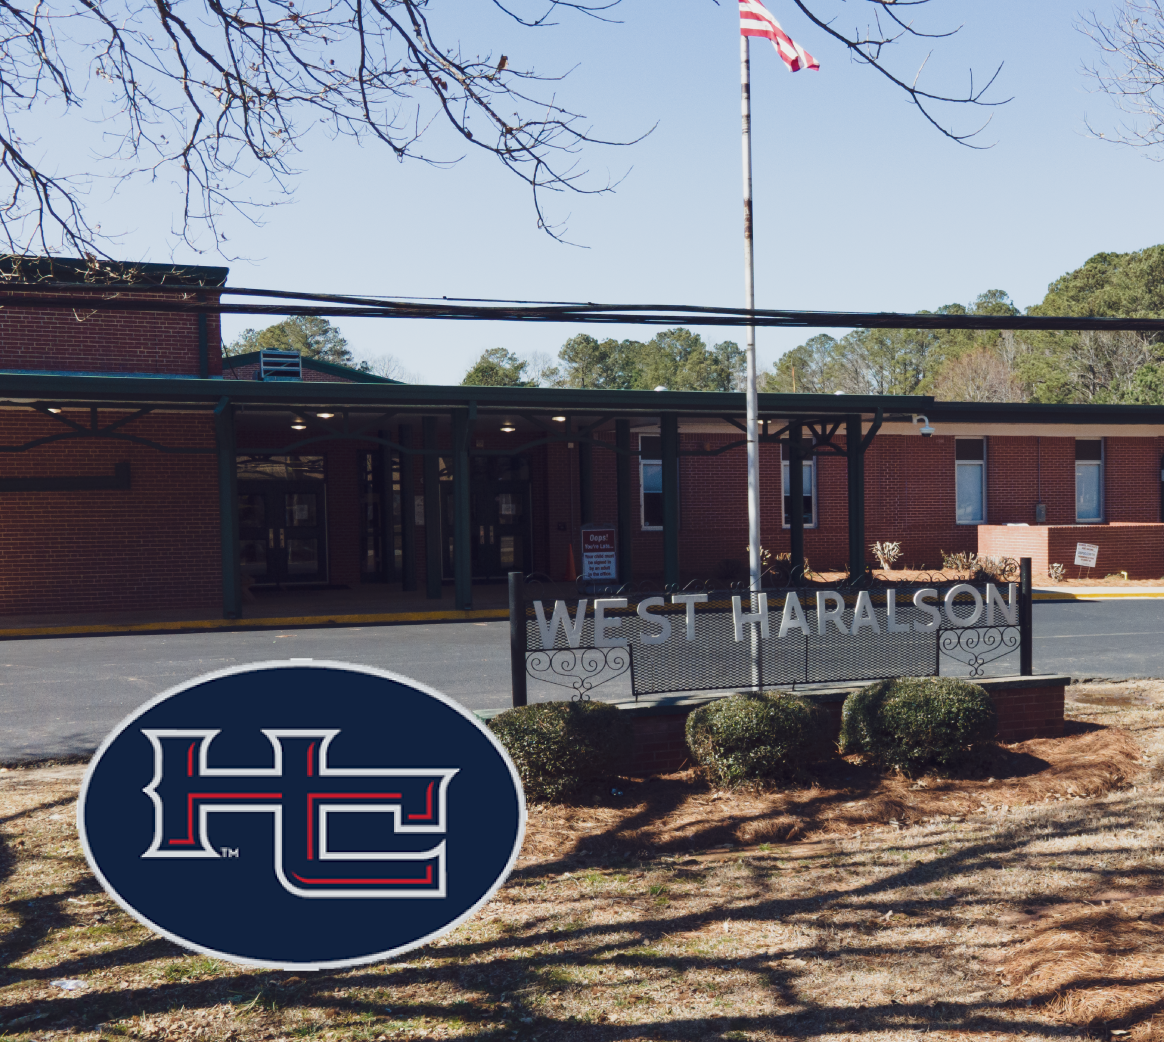 A picture of the outside of West Haralson Elementary School in Haralson County, Georgia with the school logo.